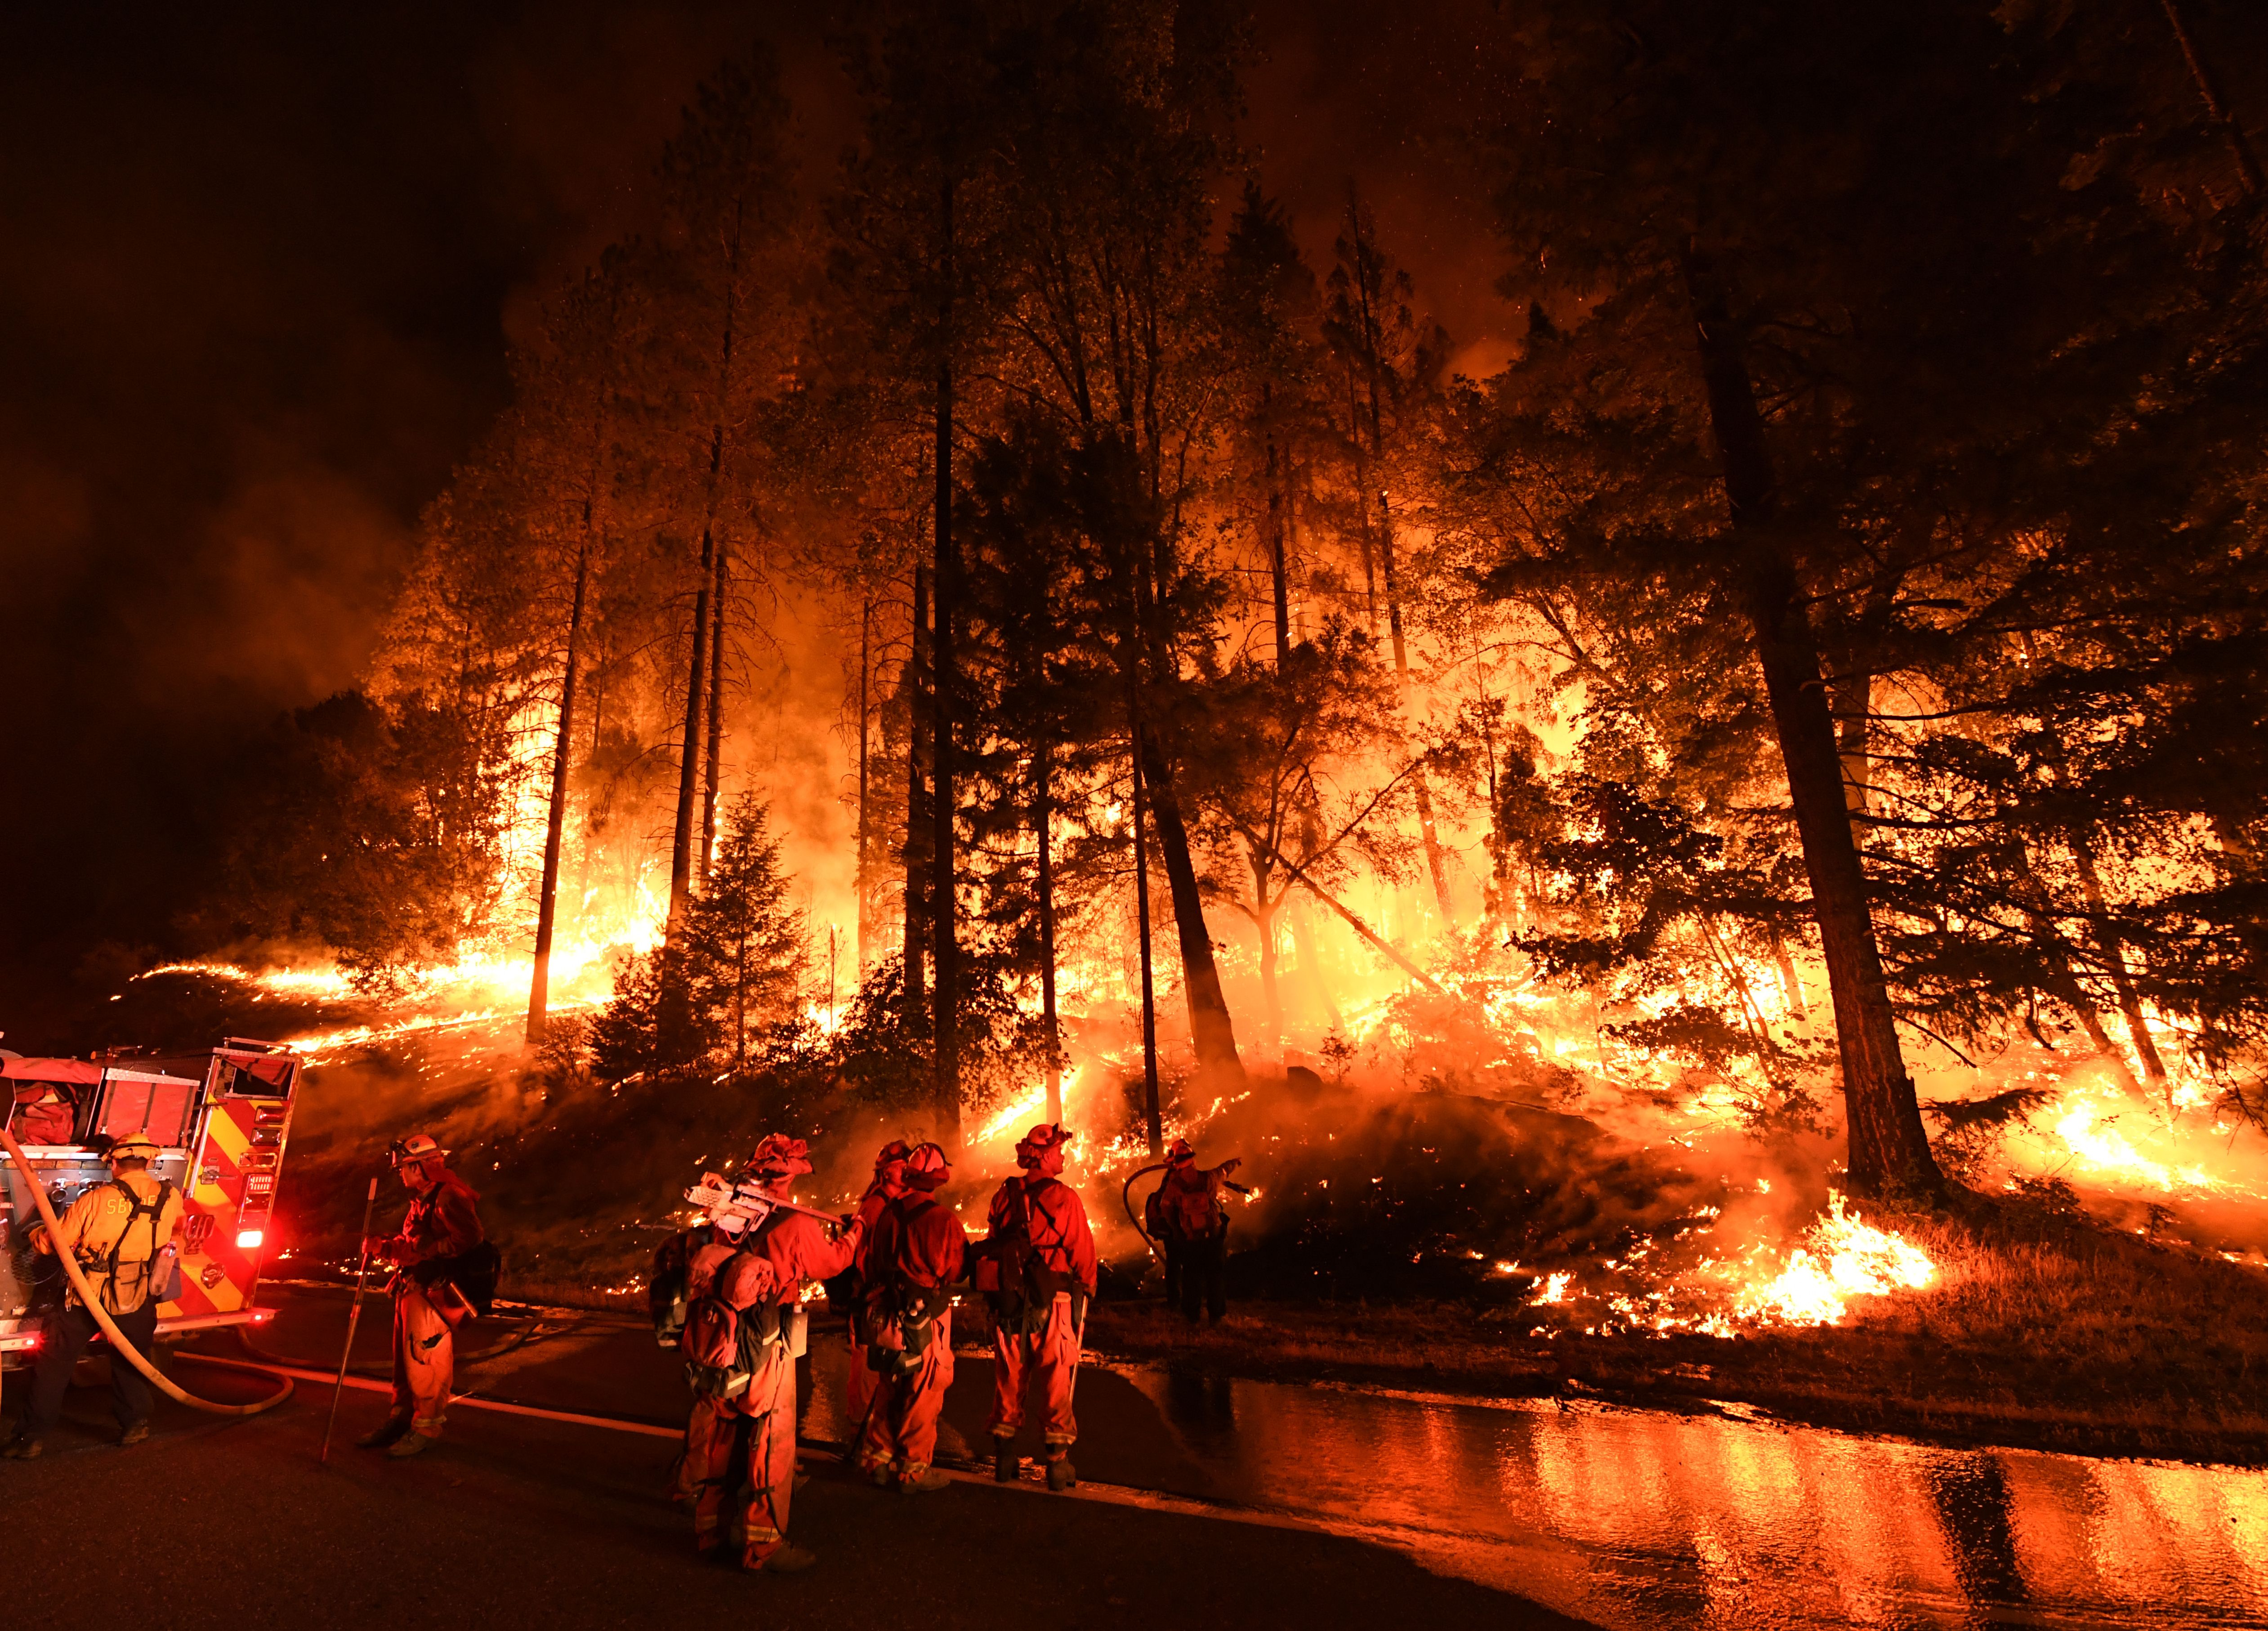 Firefighters try to control a back burn as the Carr fire continues to spread towards the towns of Douglas City and Lewiston near Redding, California on July 31, 2018. Two firefighters were killed fighting the blaze and three people, a 70 year old woman and her two great-grandchildren age four and five, perished when their Redding home was rapidly swallowed up by flames.